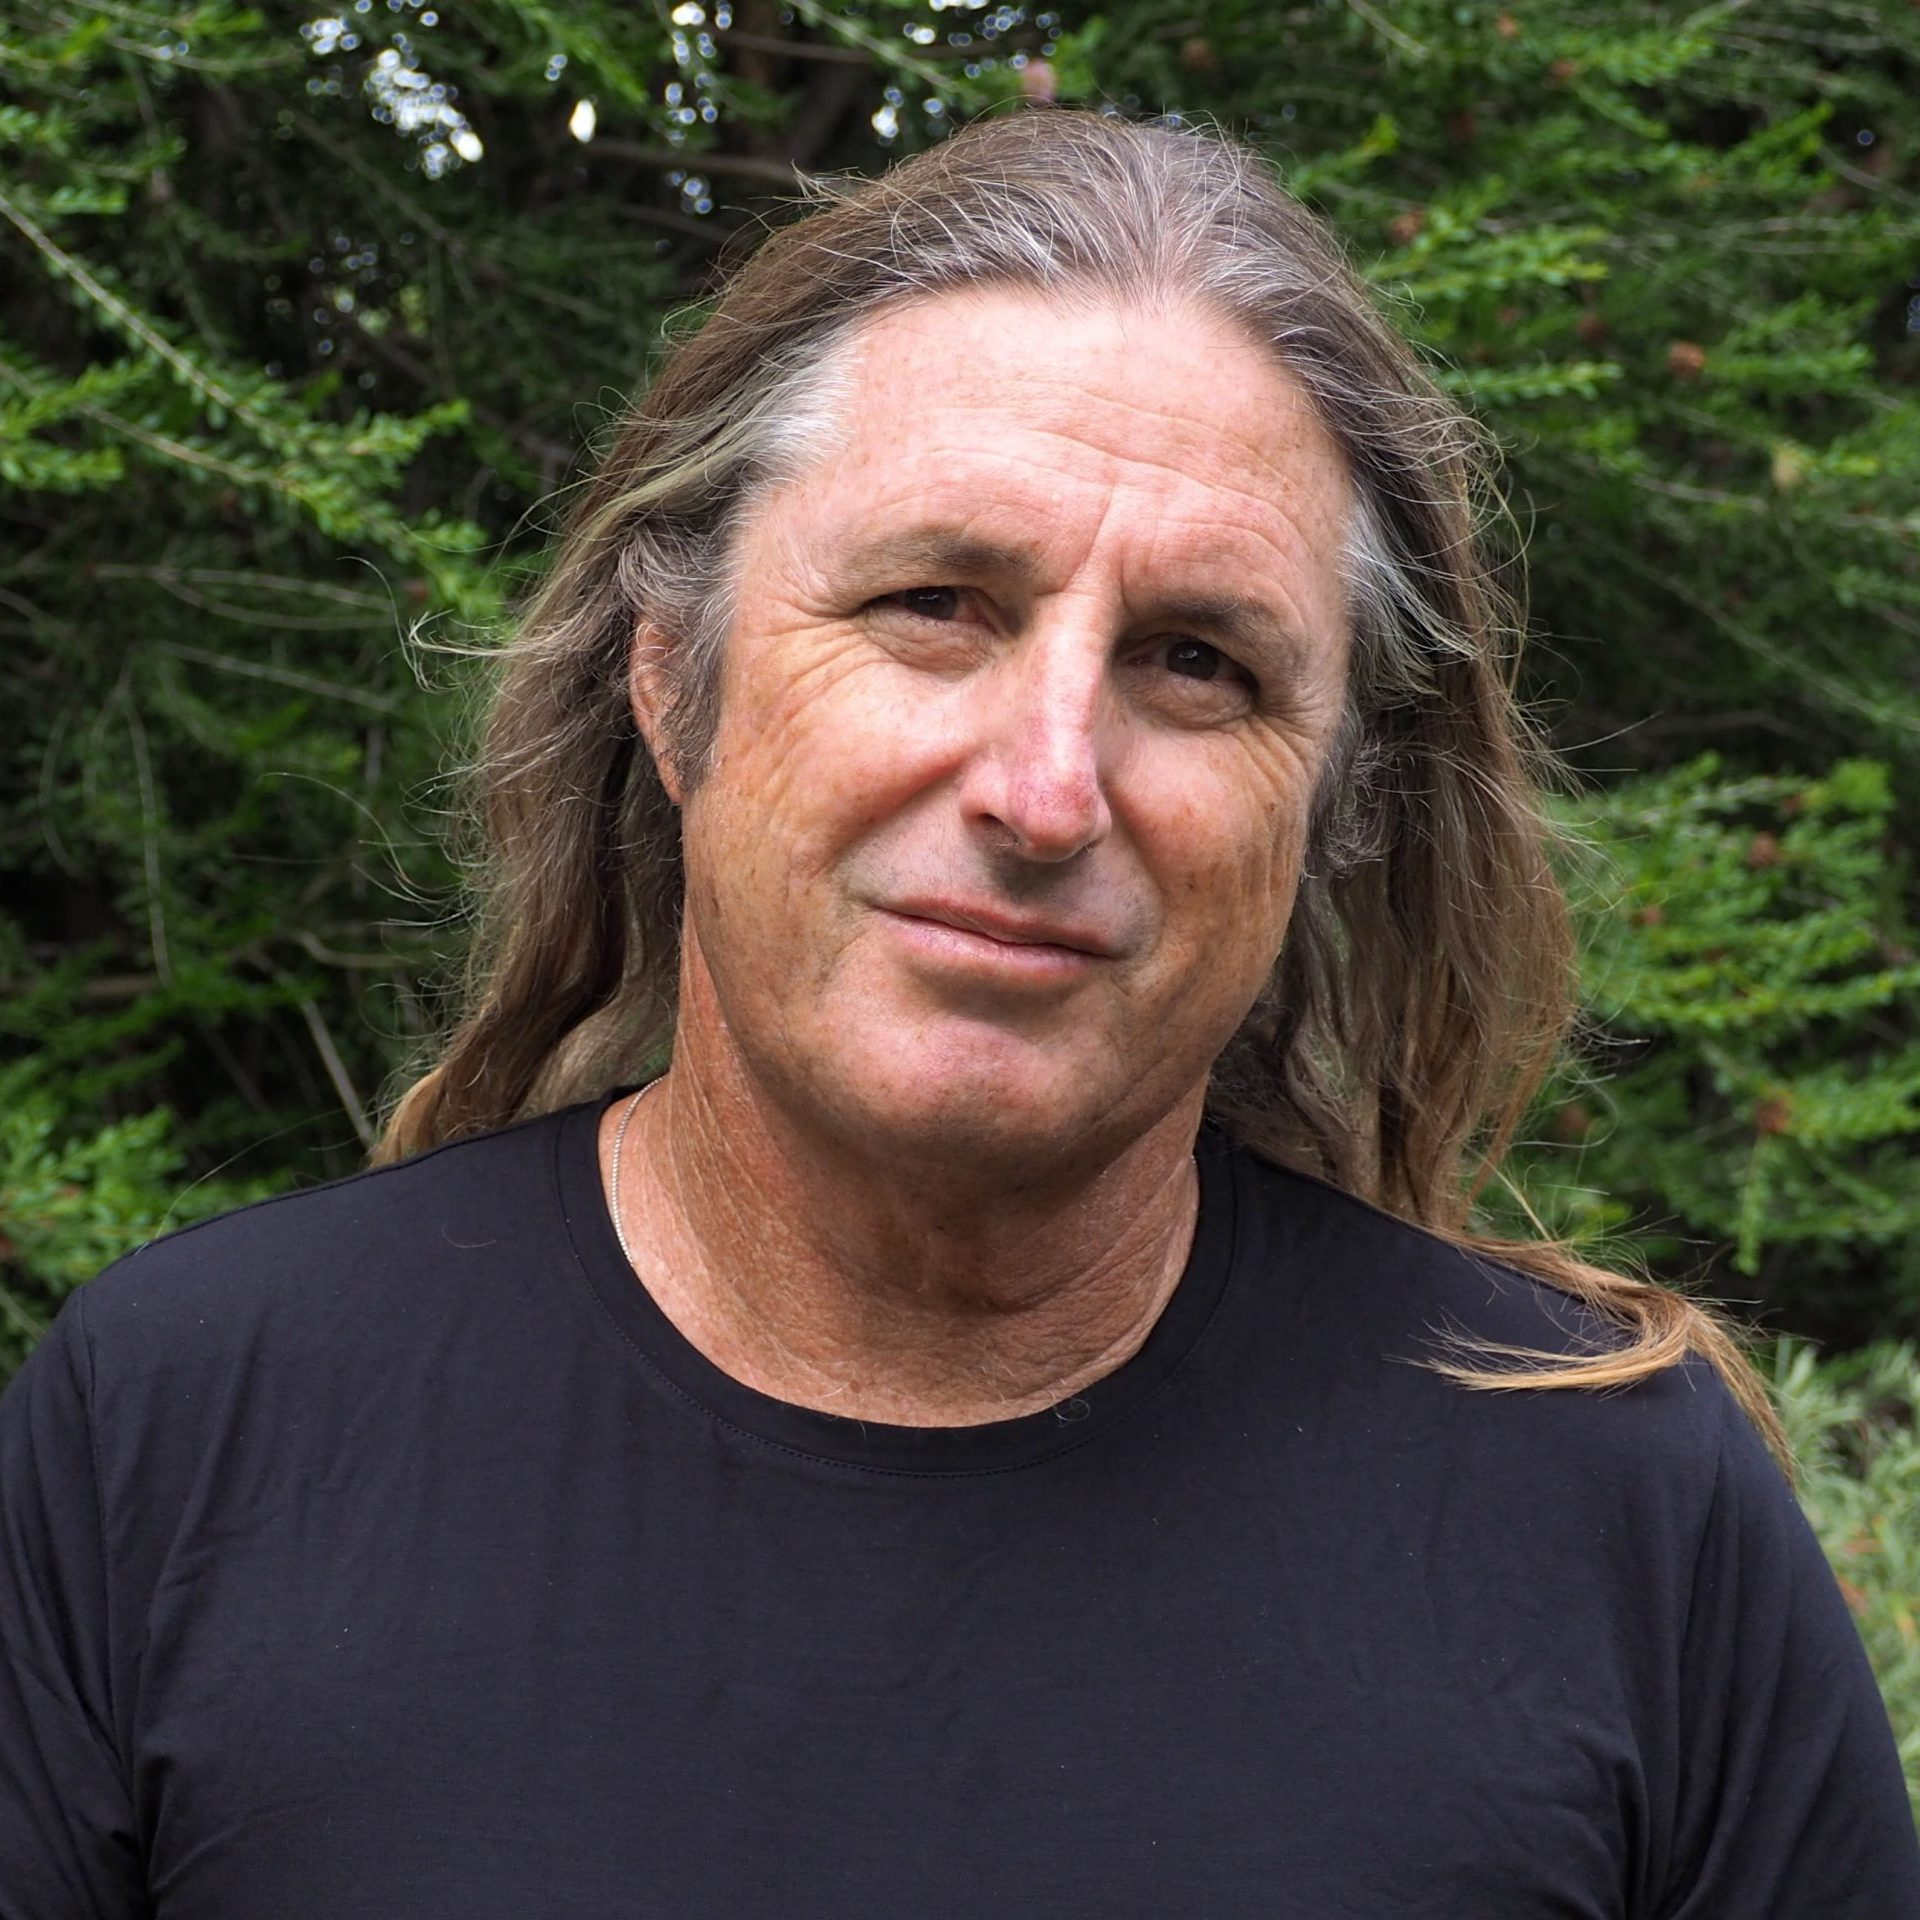 A photo of Tim Winton